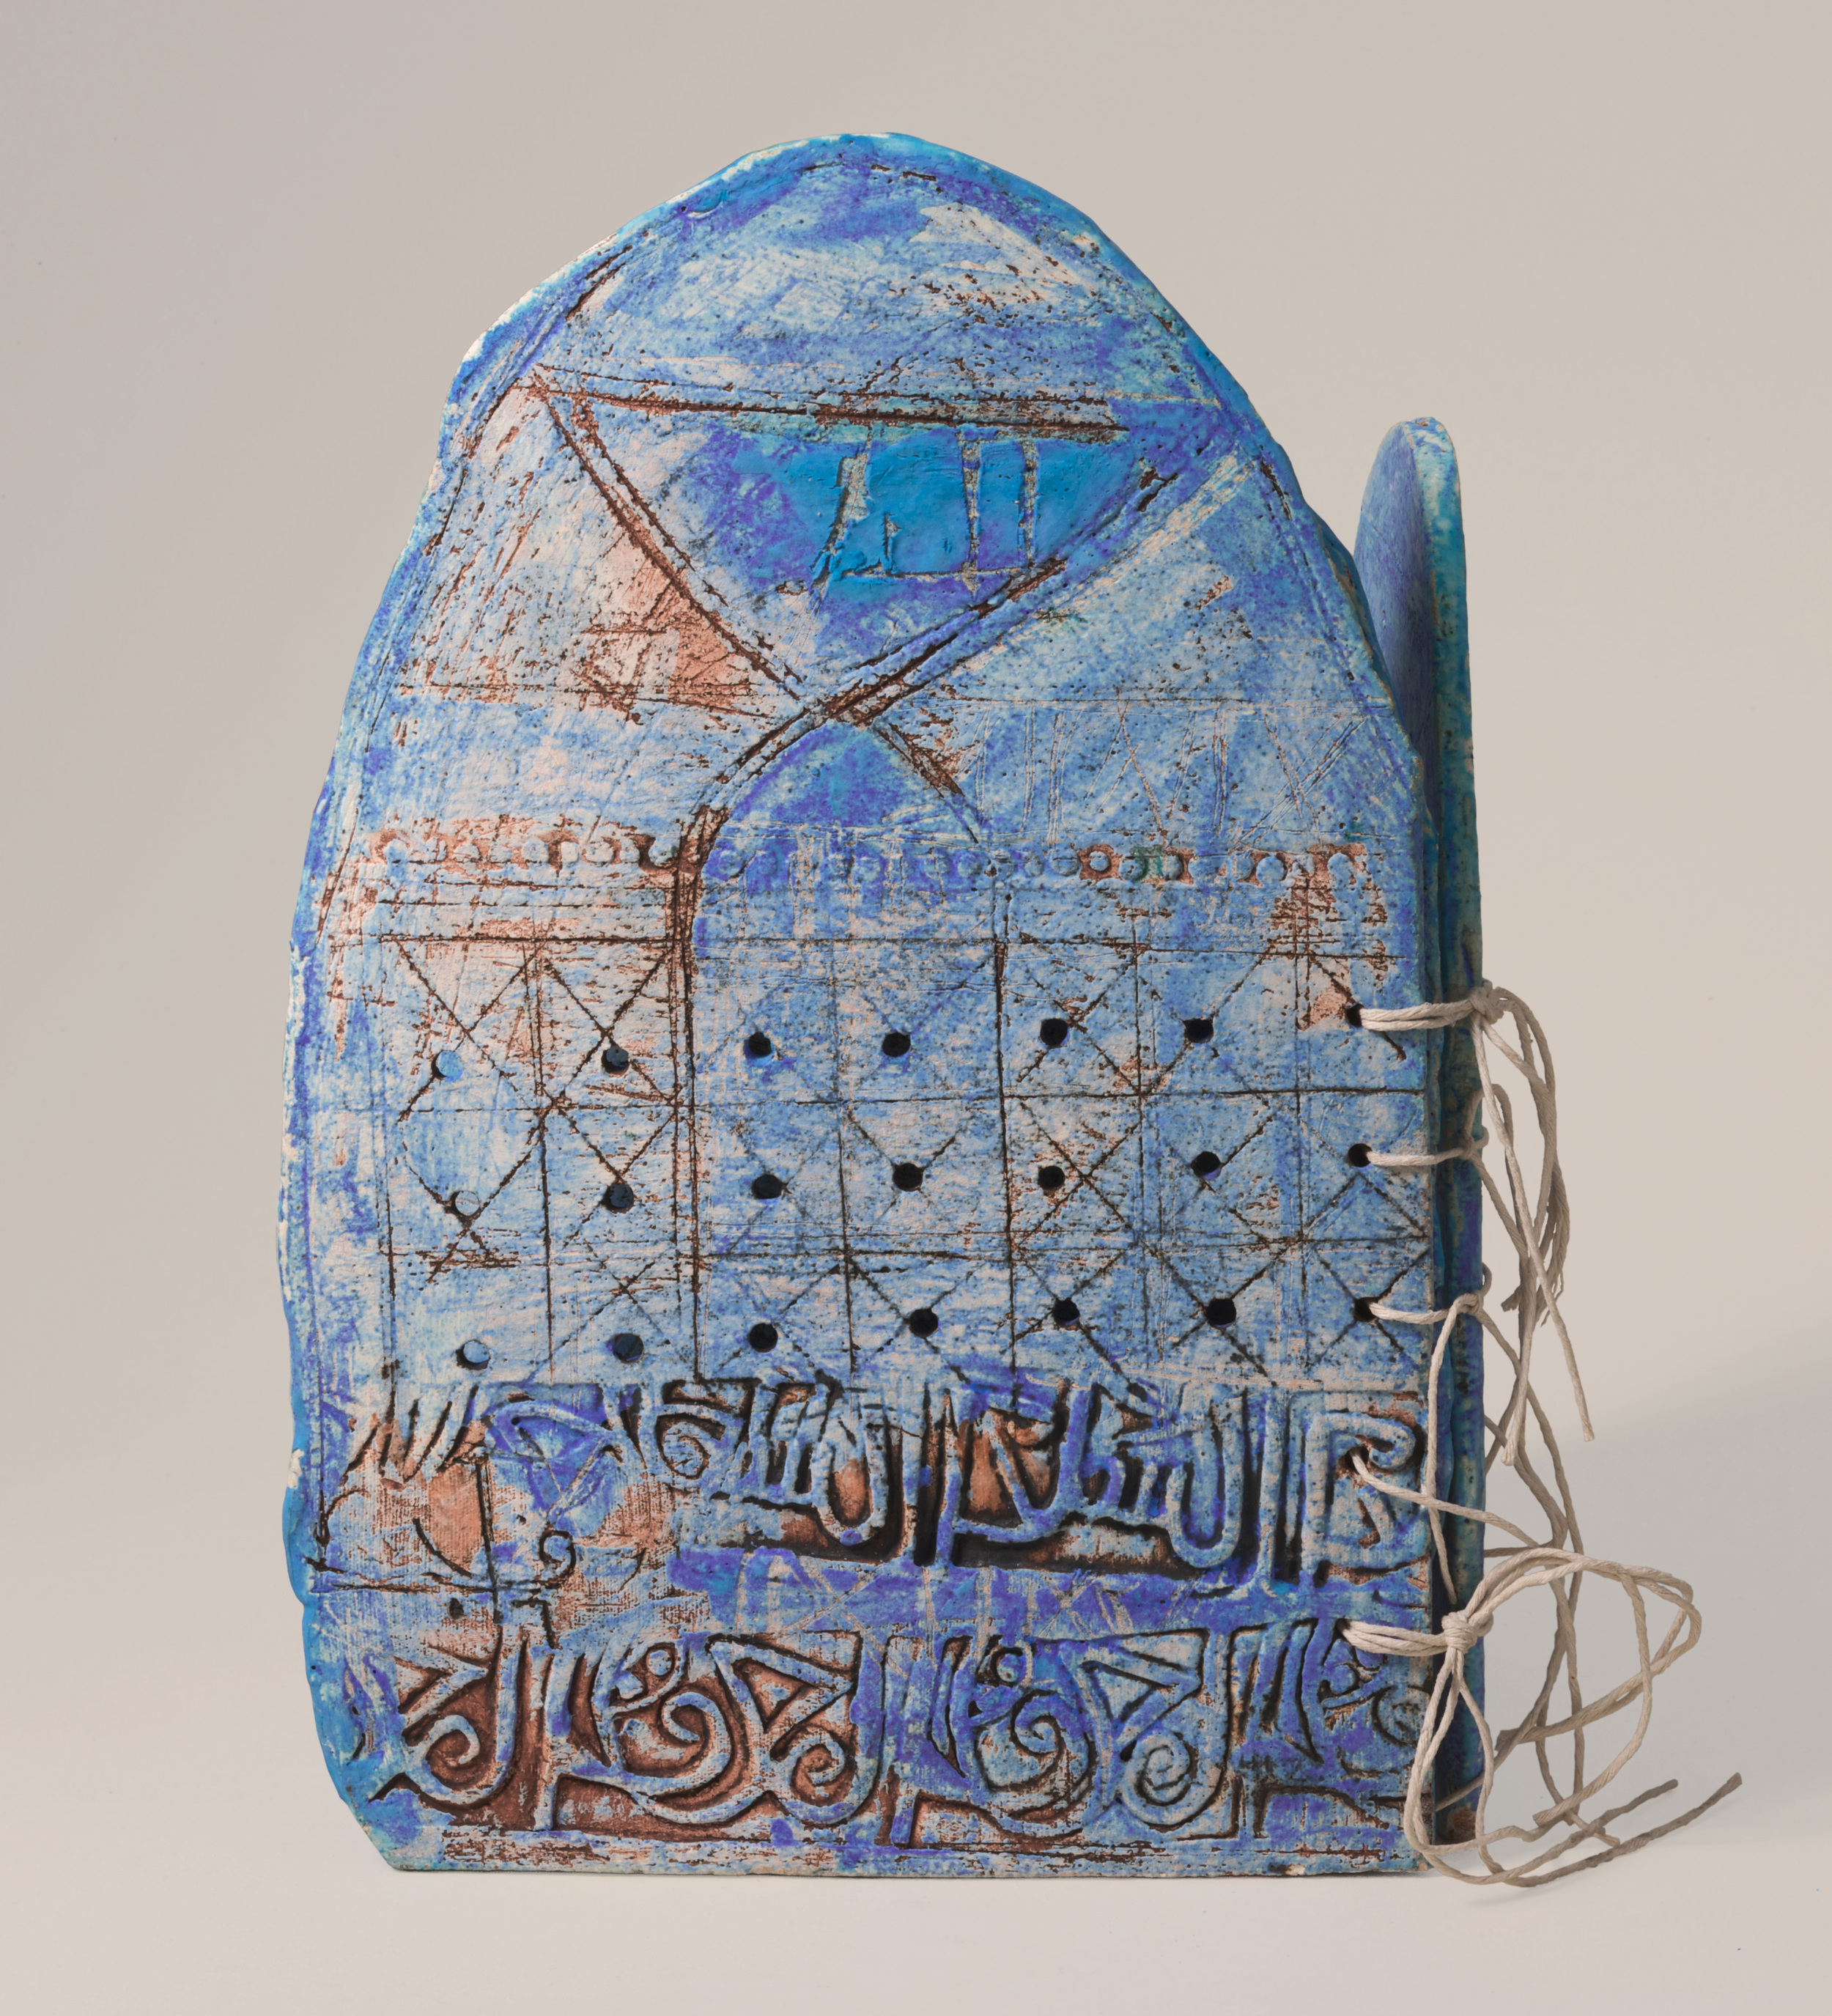 Gates of Peace   Earthstone, glaze and oxide 35x25x15cm 2004  Hussain Ali Harba Collection  Italy